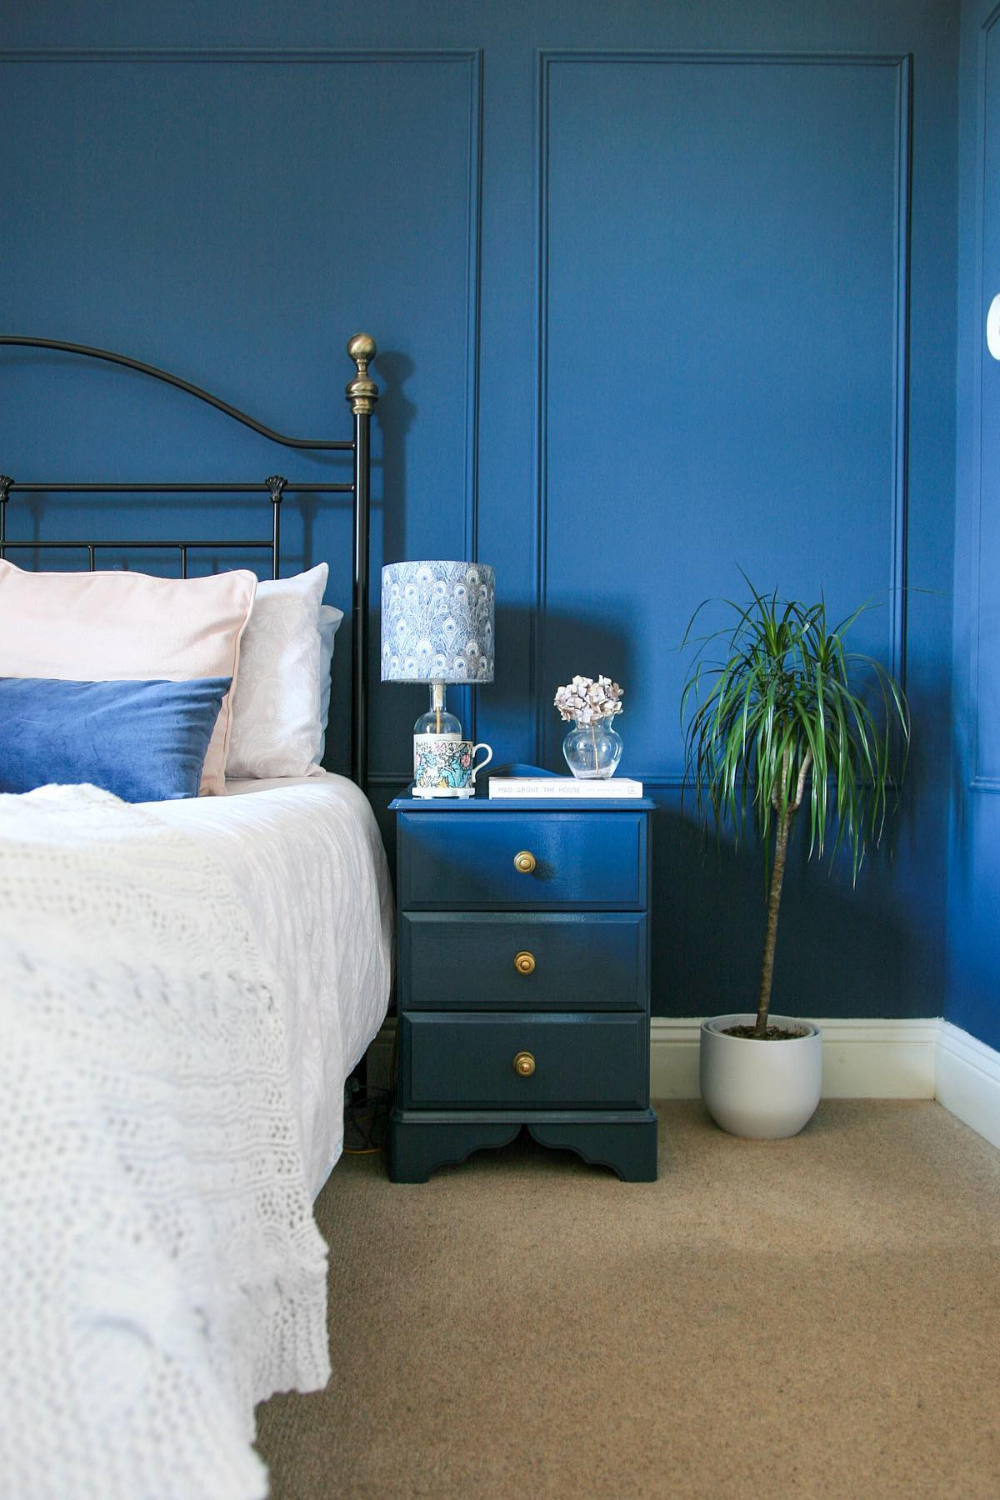 Image shows a bedside table with wall panelling behind using decorative moulding.